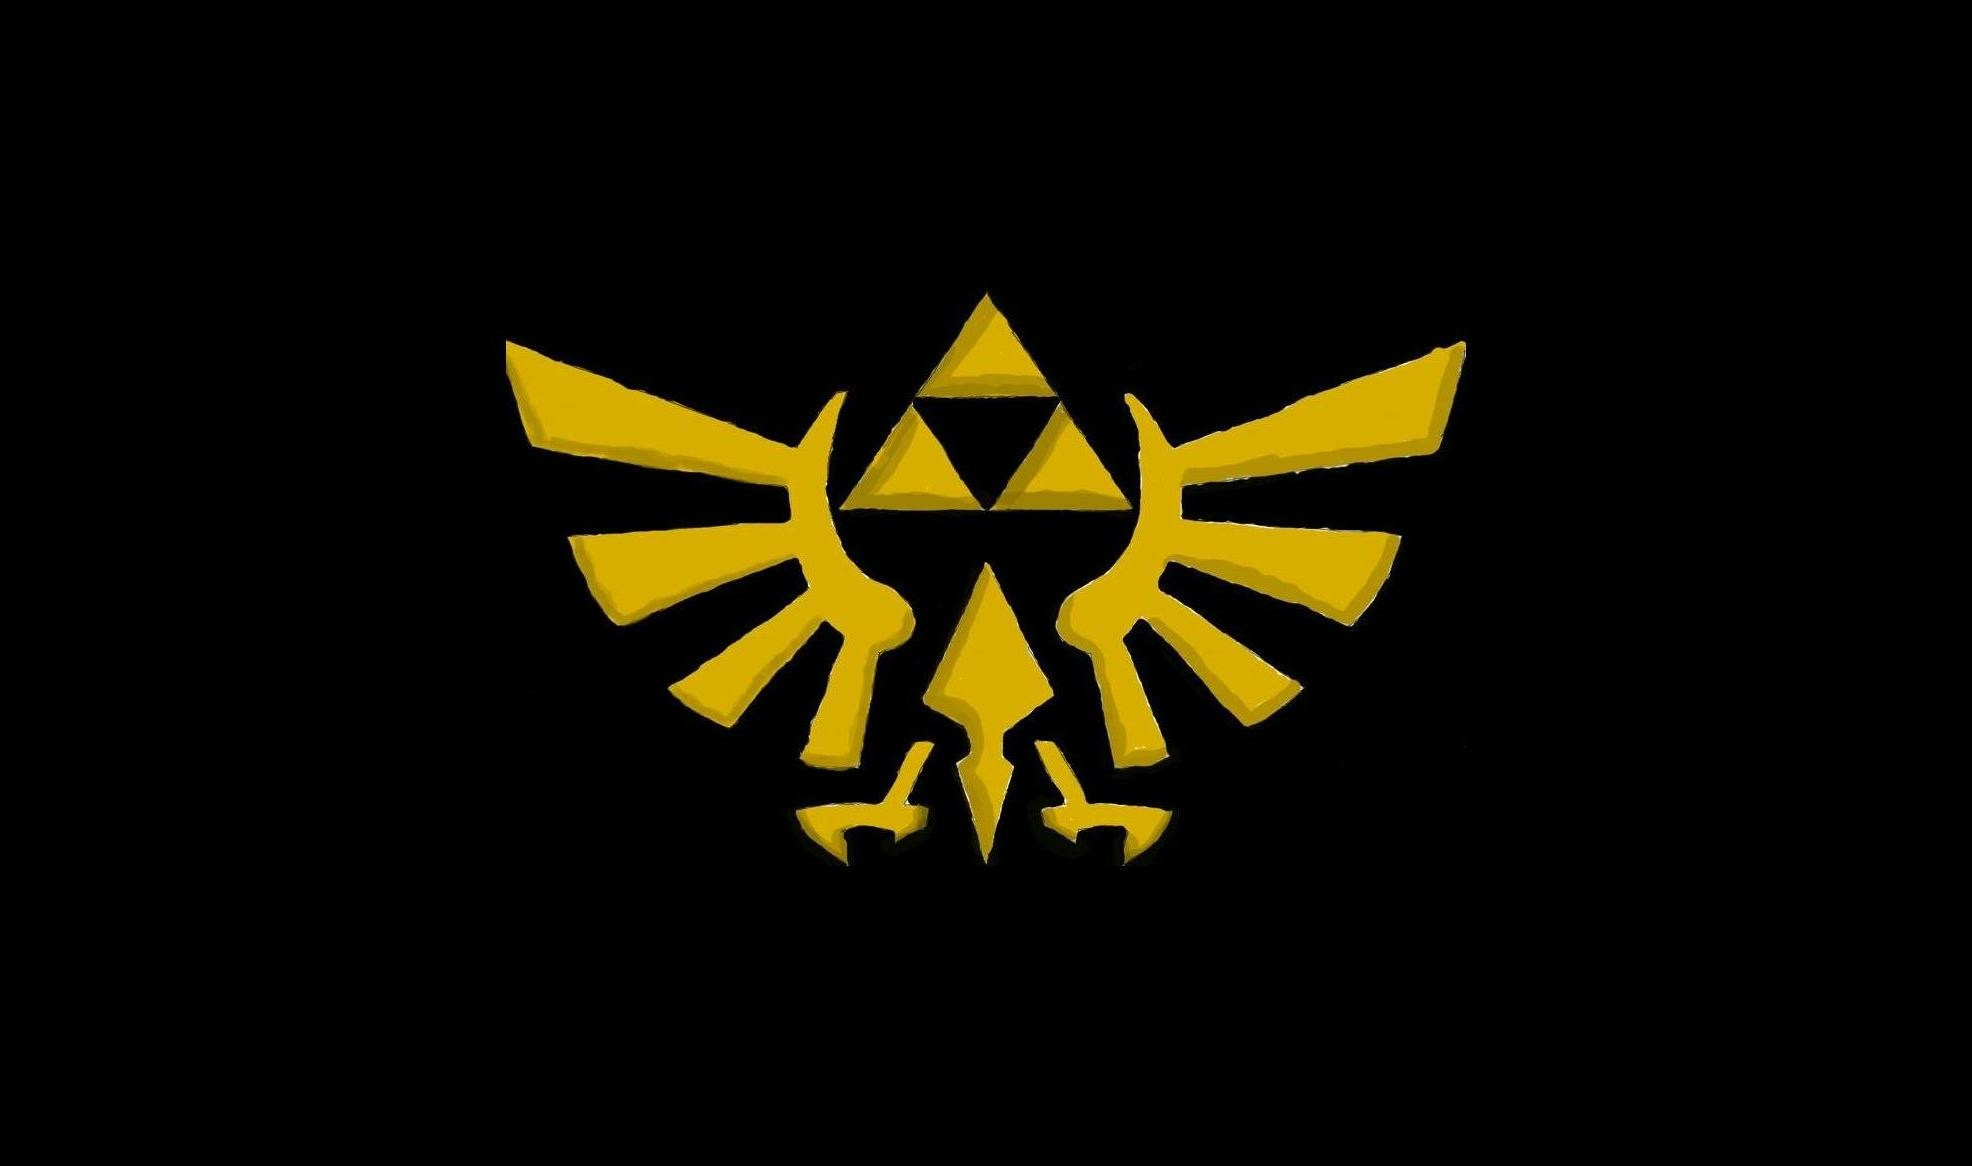 Wingcrest The Legend Of Zelda Ocarina Of Time 3d Wallpaper